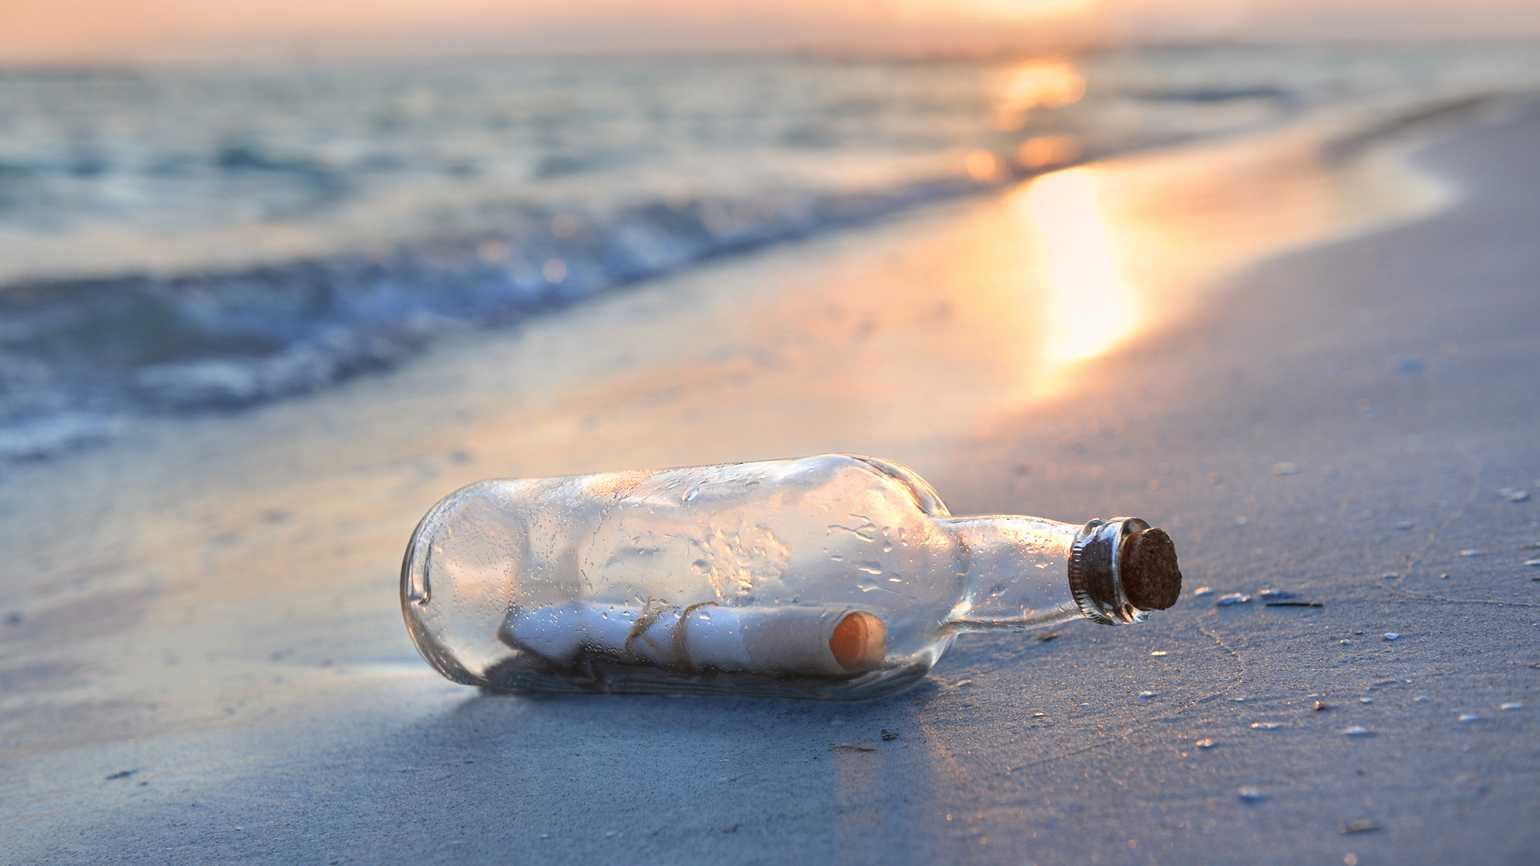 A message in a bottle on the beach.